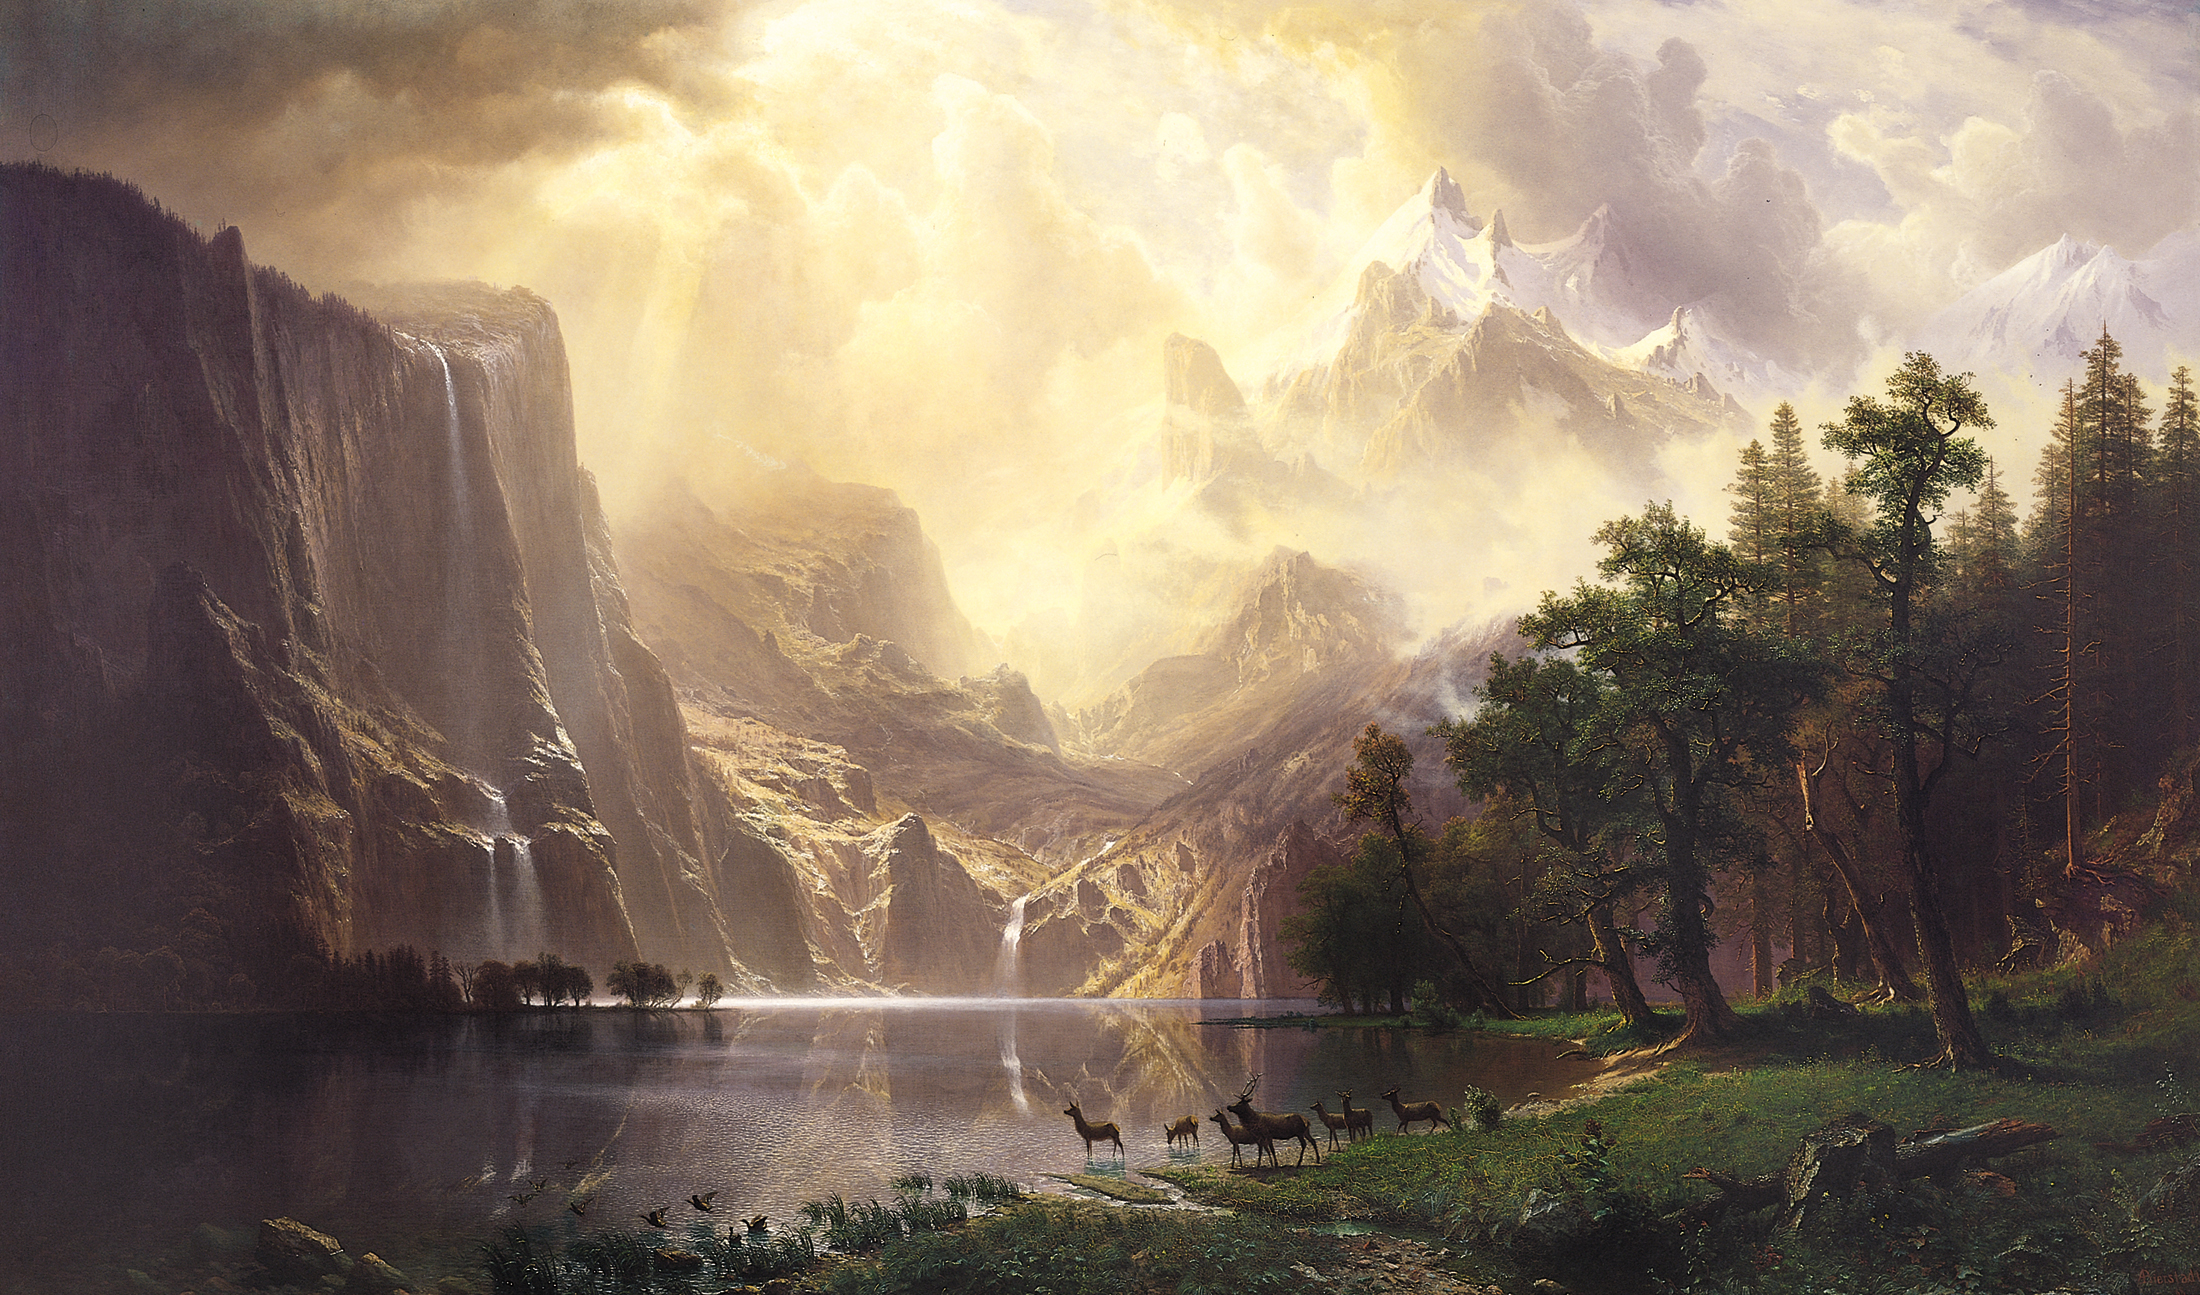 'Among The Sierra Nevada Mountains' by Albert Bierstadt